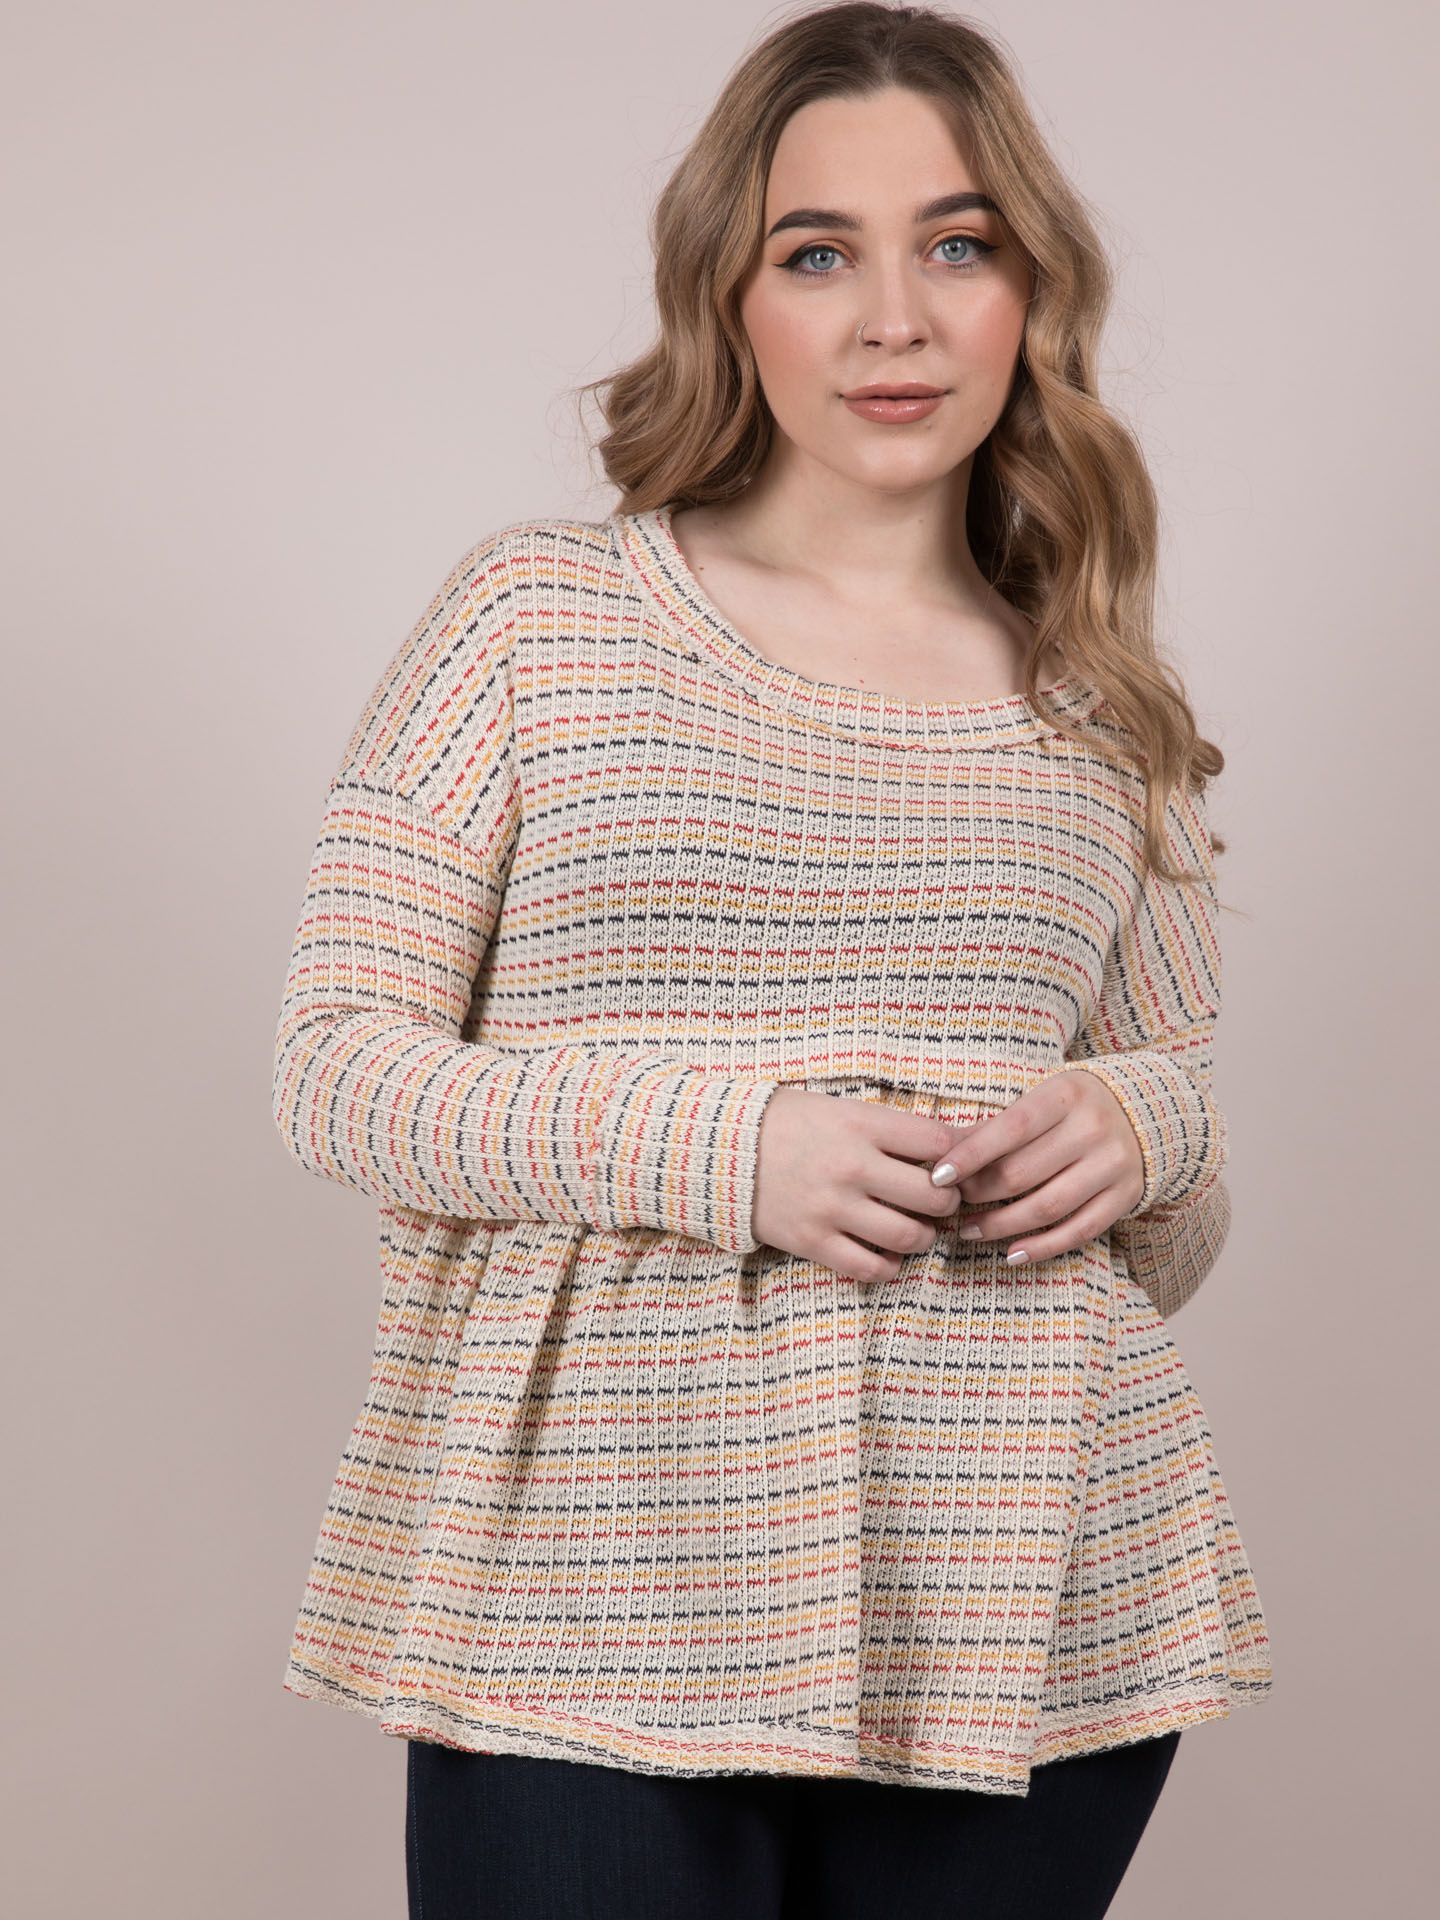 Judith Long Sleeve Relaxed Striped Stitched Peplum